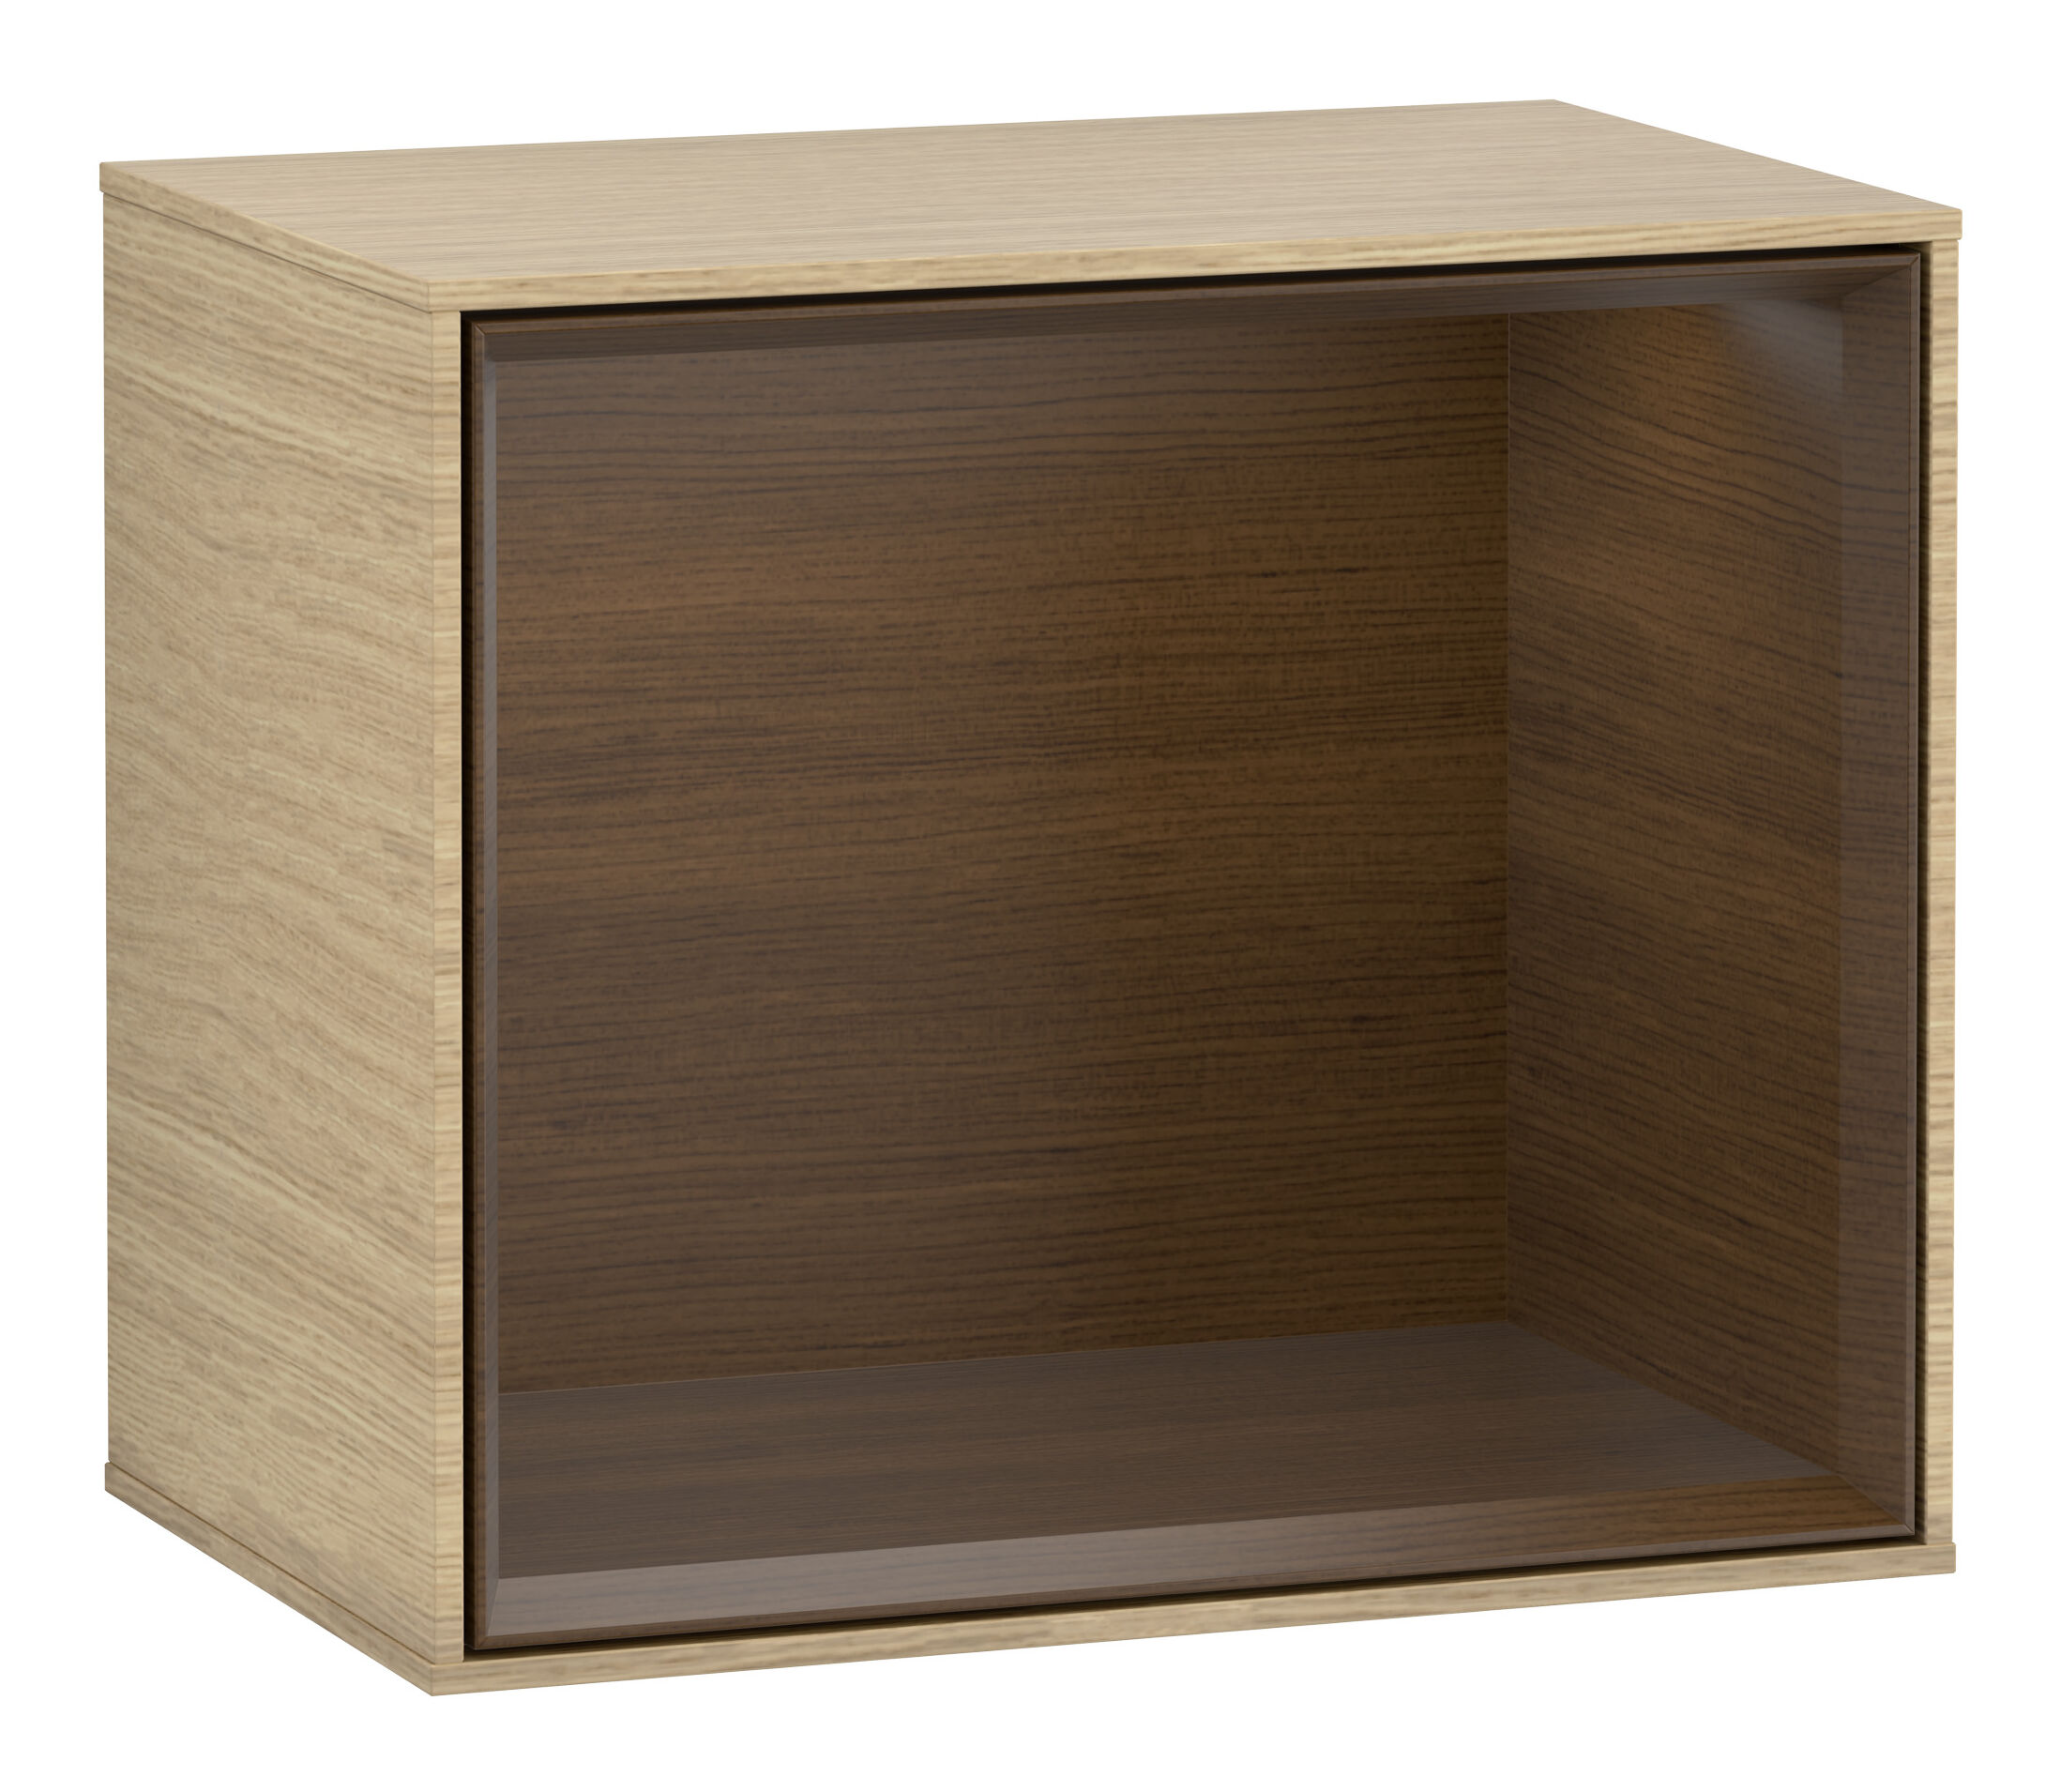 Villeroy & Boch Finion Regal 418 x 356 x 270 mm - Oak Veneer / Walnut Veneer - FD10GNPC